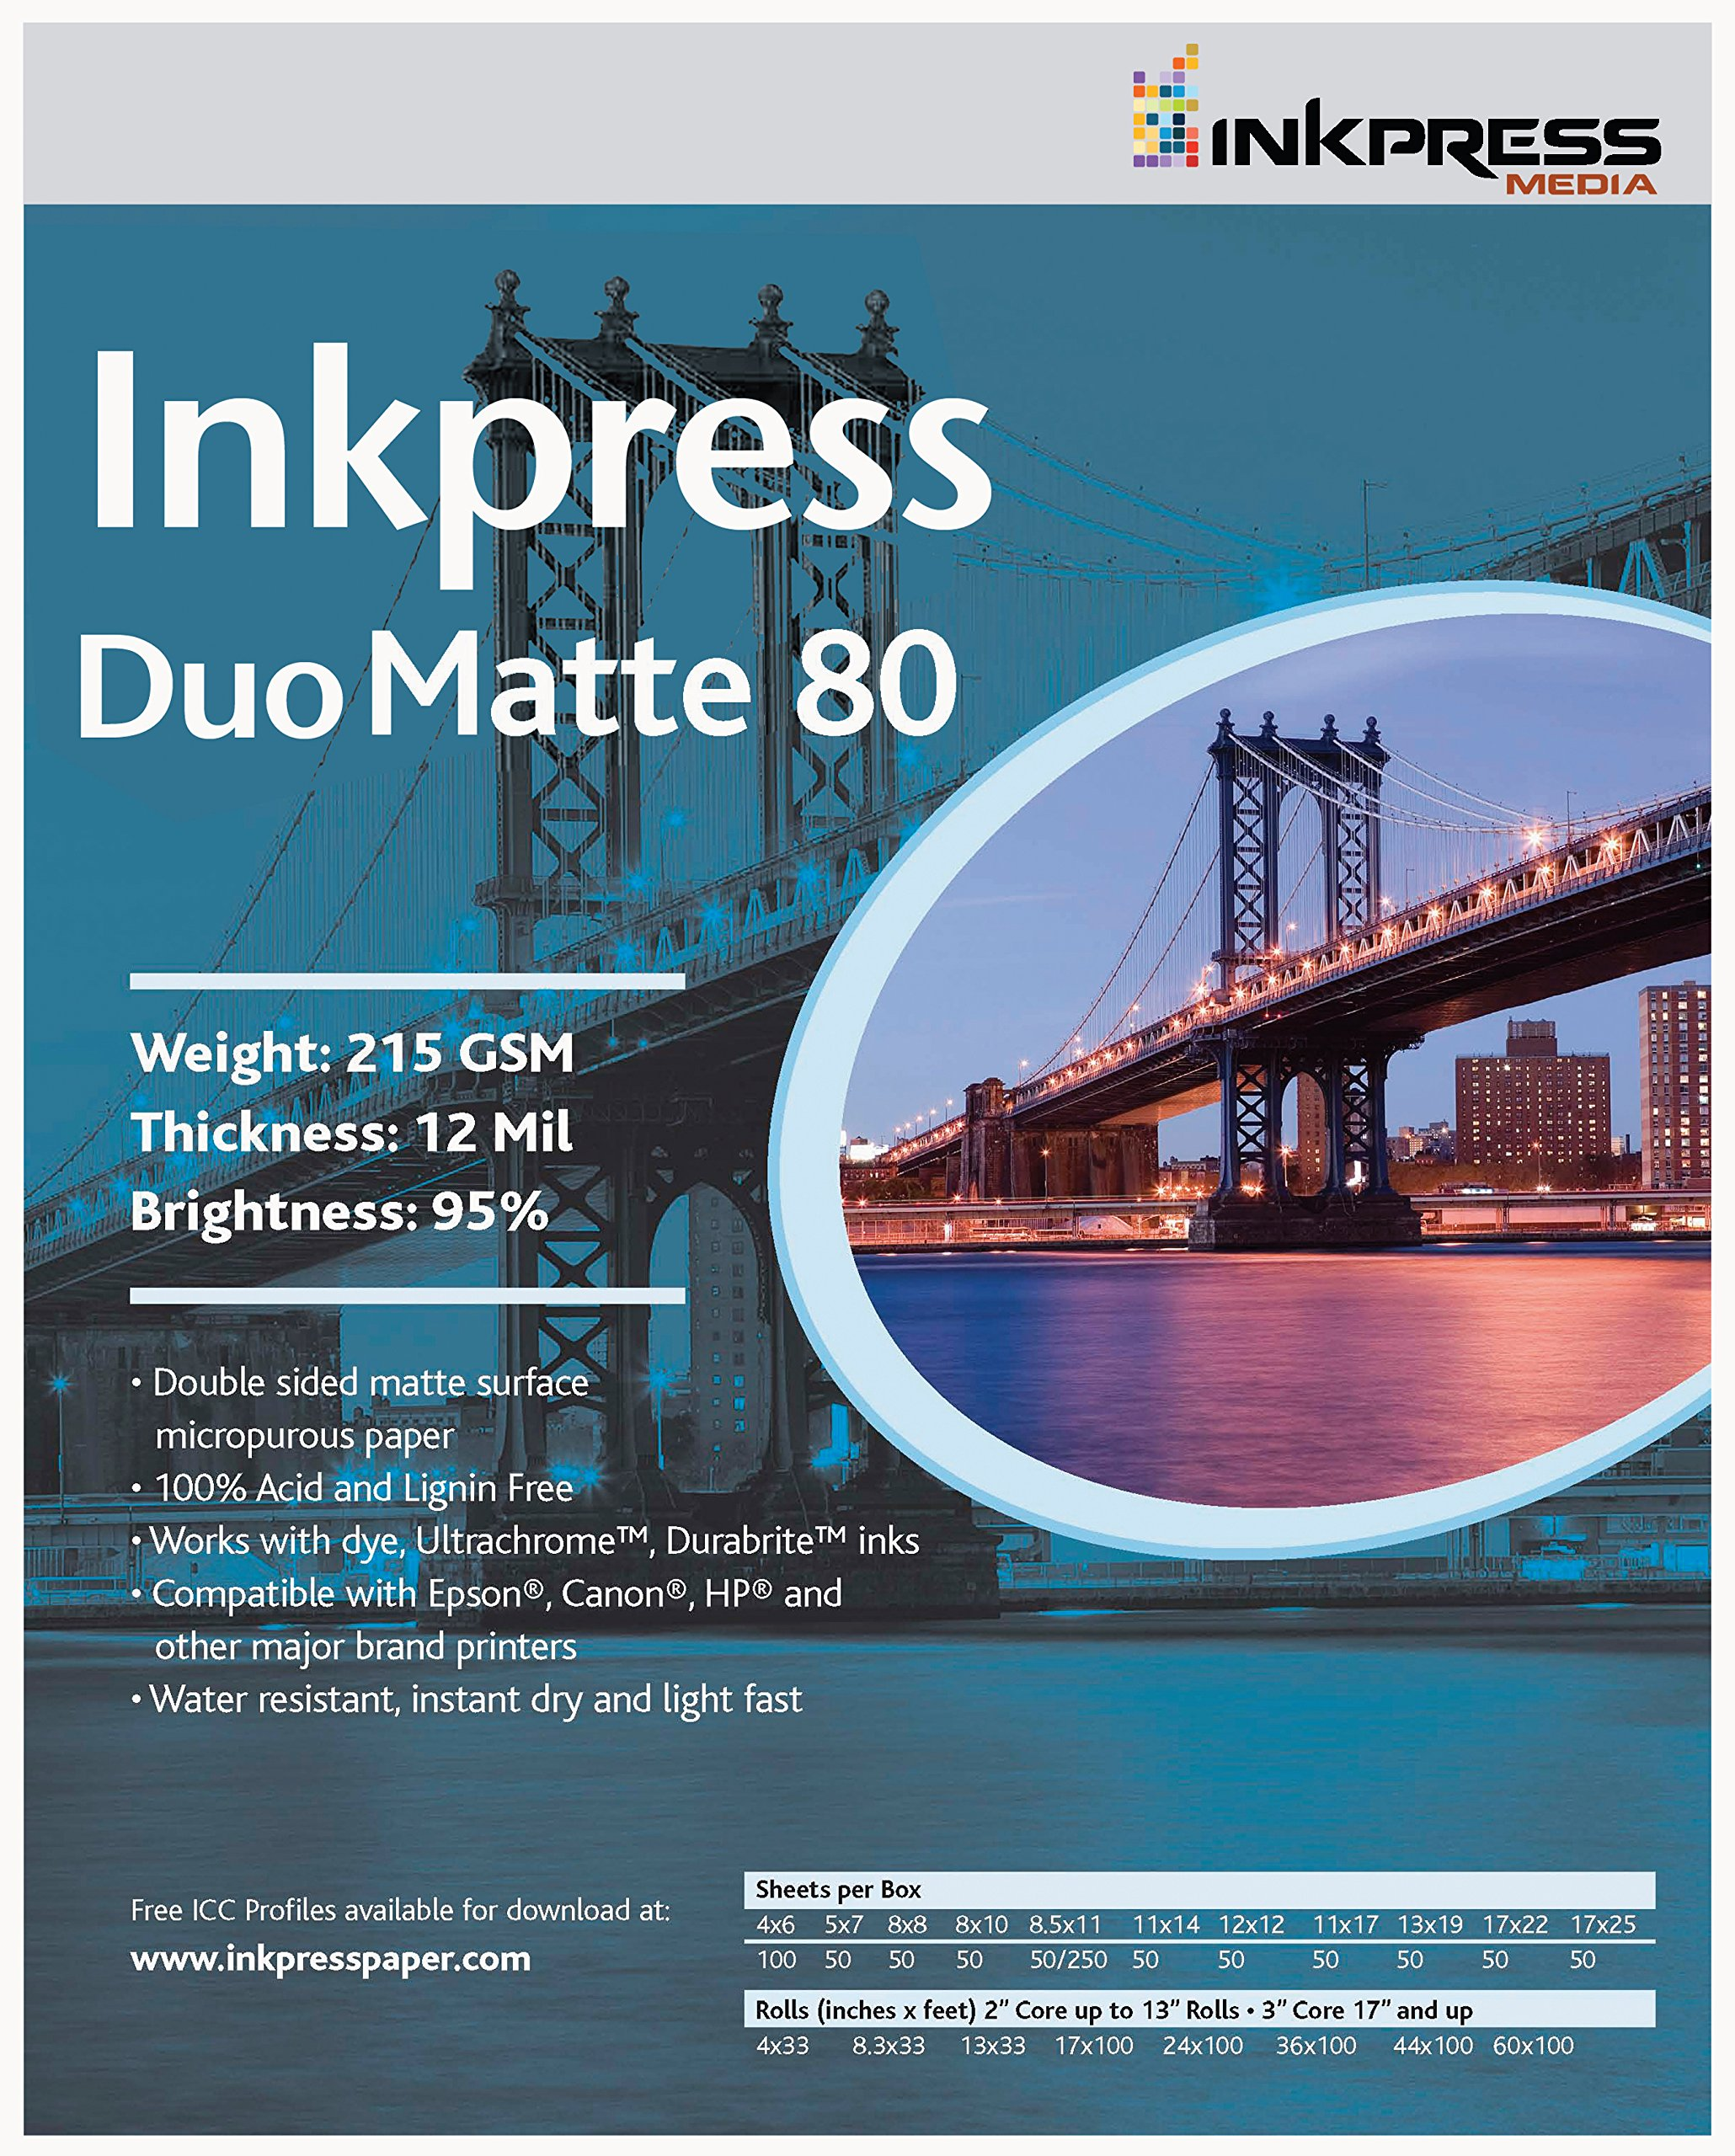 INKPRESS MEDIA 215 GSM,12 Mil,5x7'', 95 Percent Bright, Double Sided Photo Paper (#PP805750)